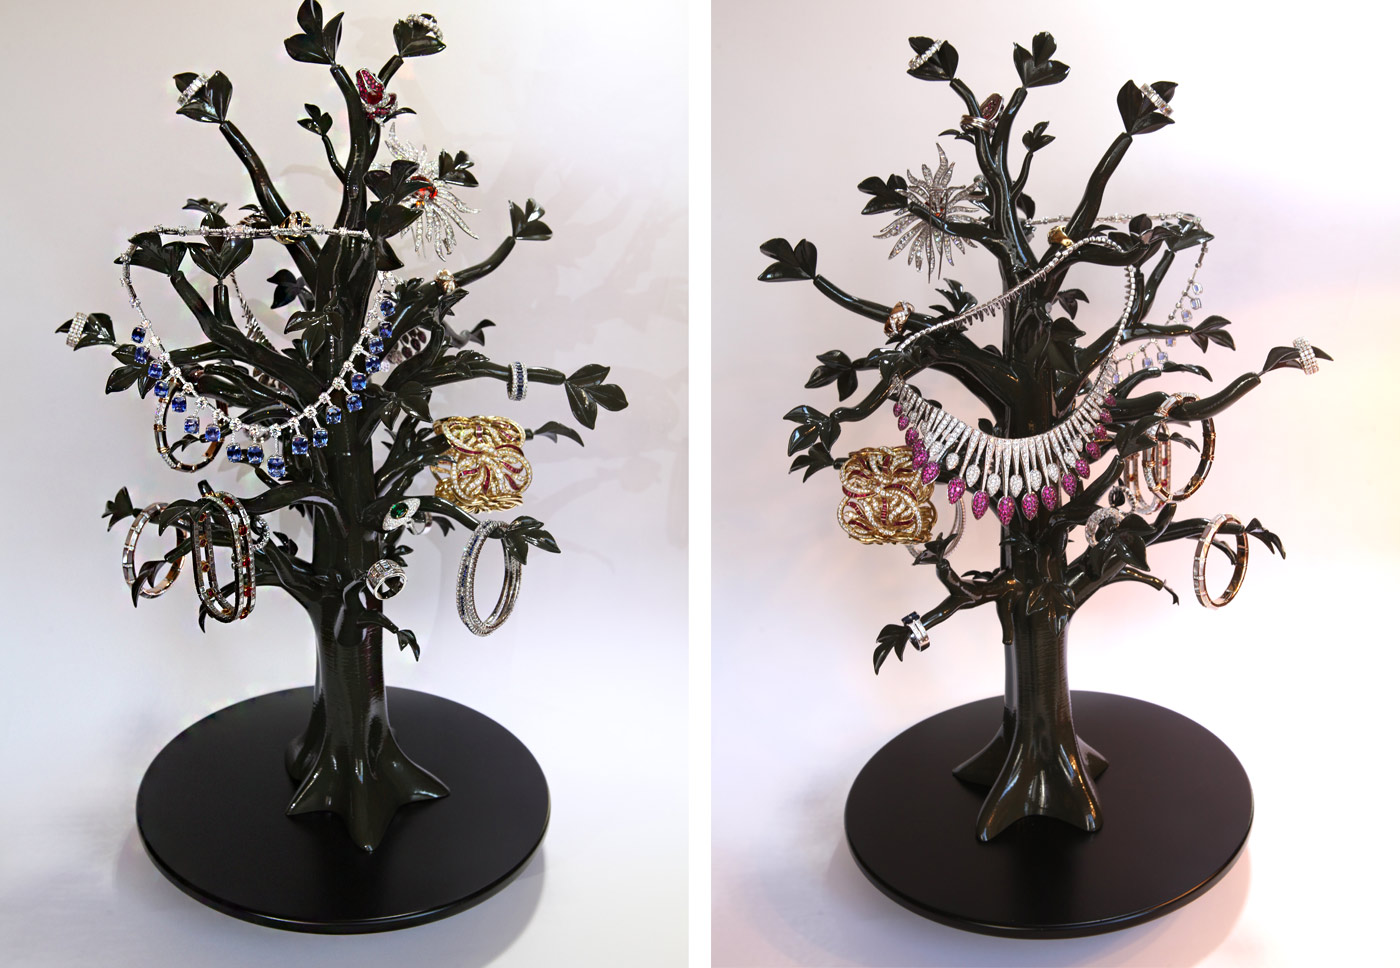 Picchiotti jewellery tree at Baselworld 2018